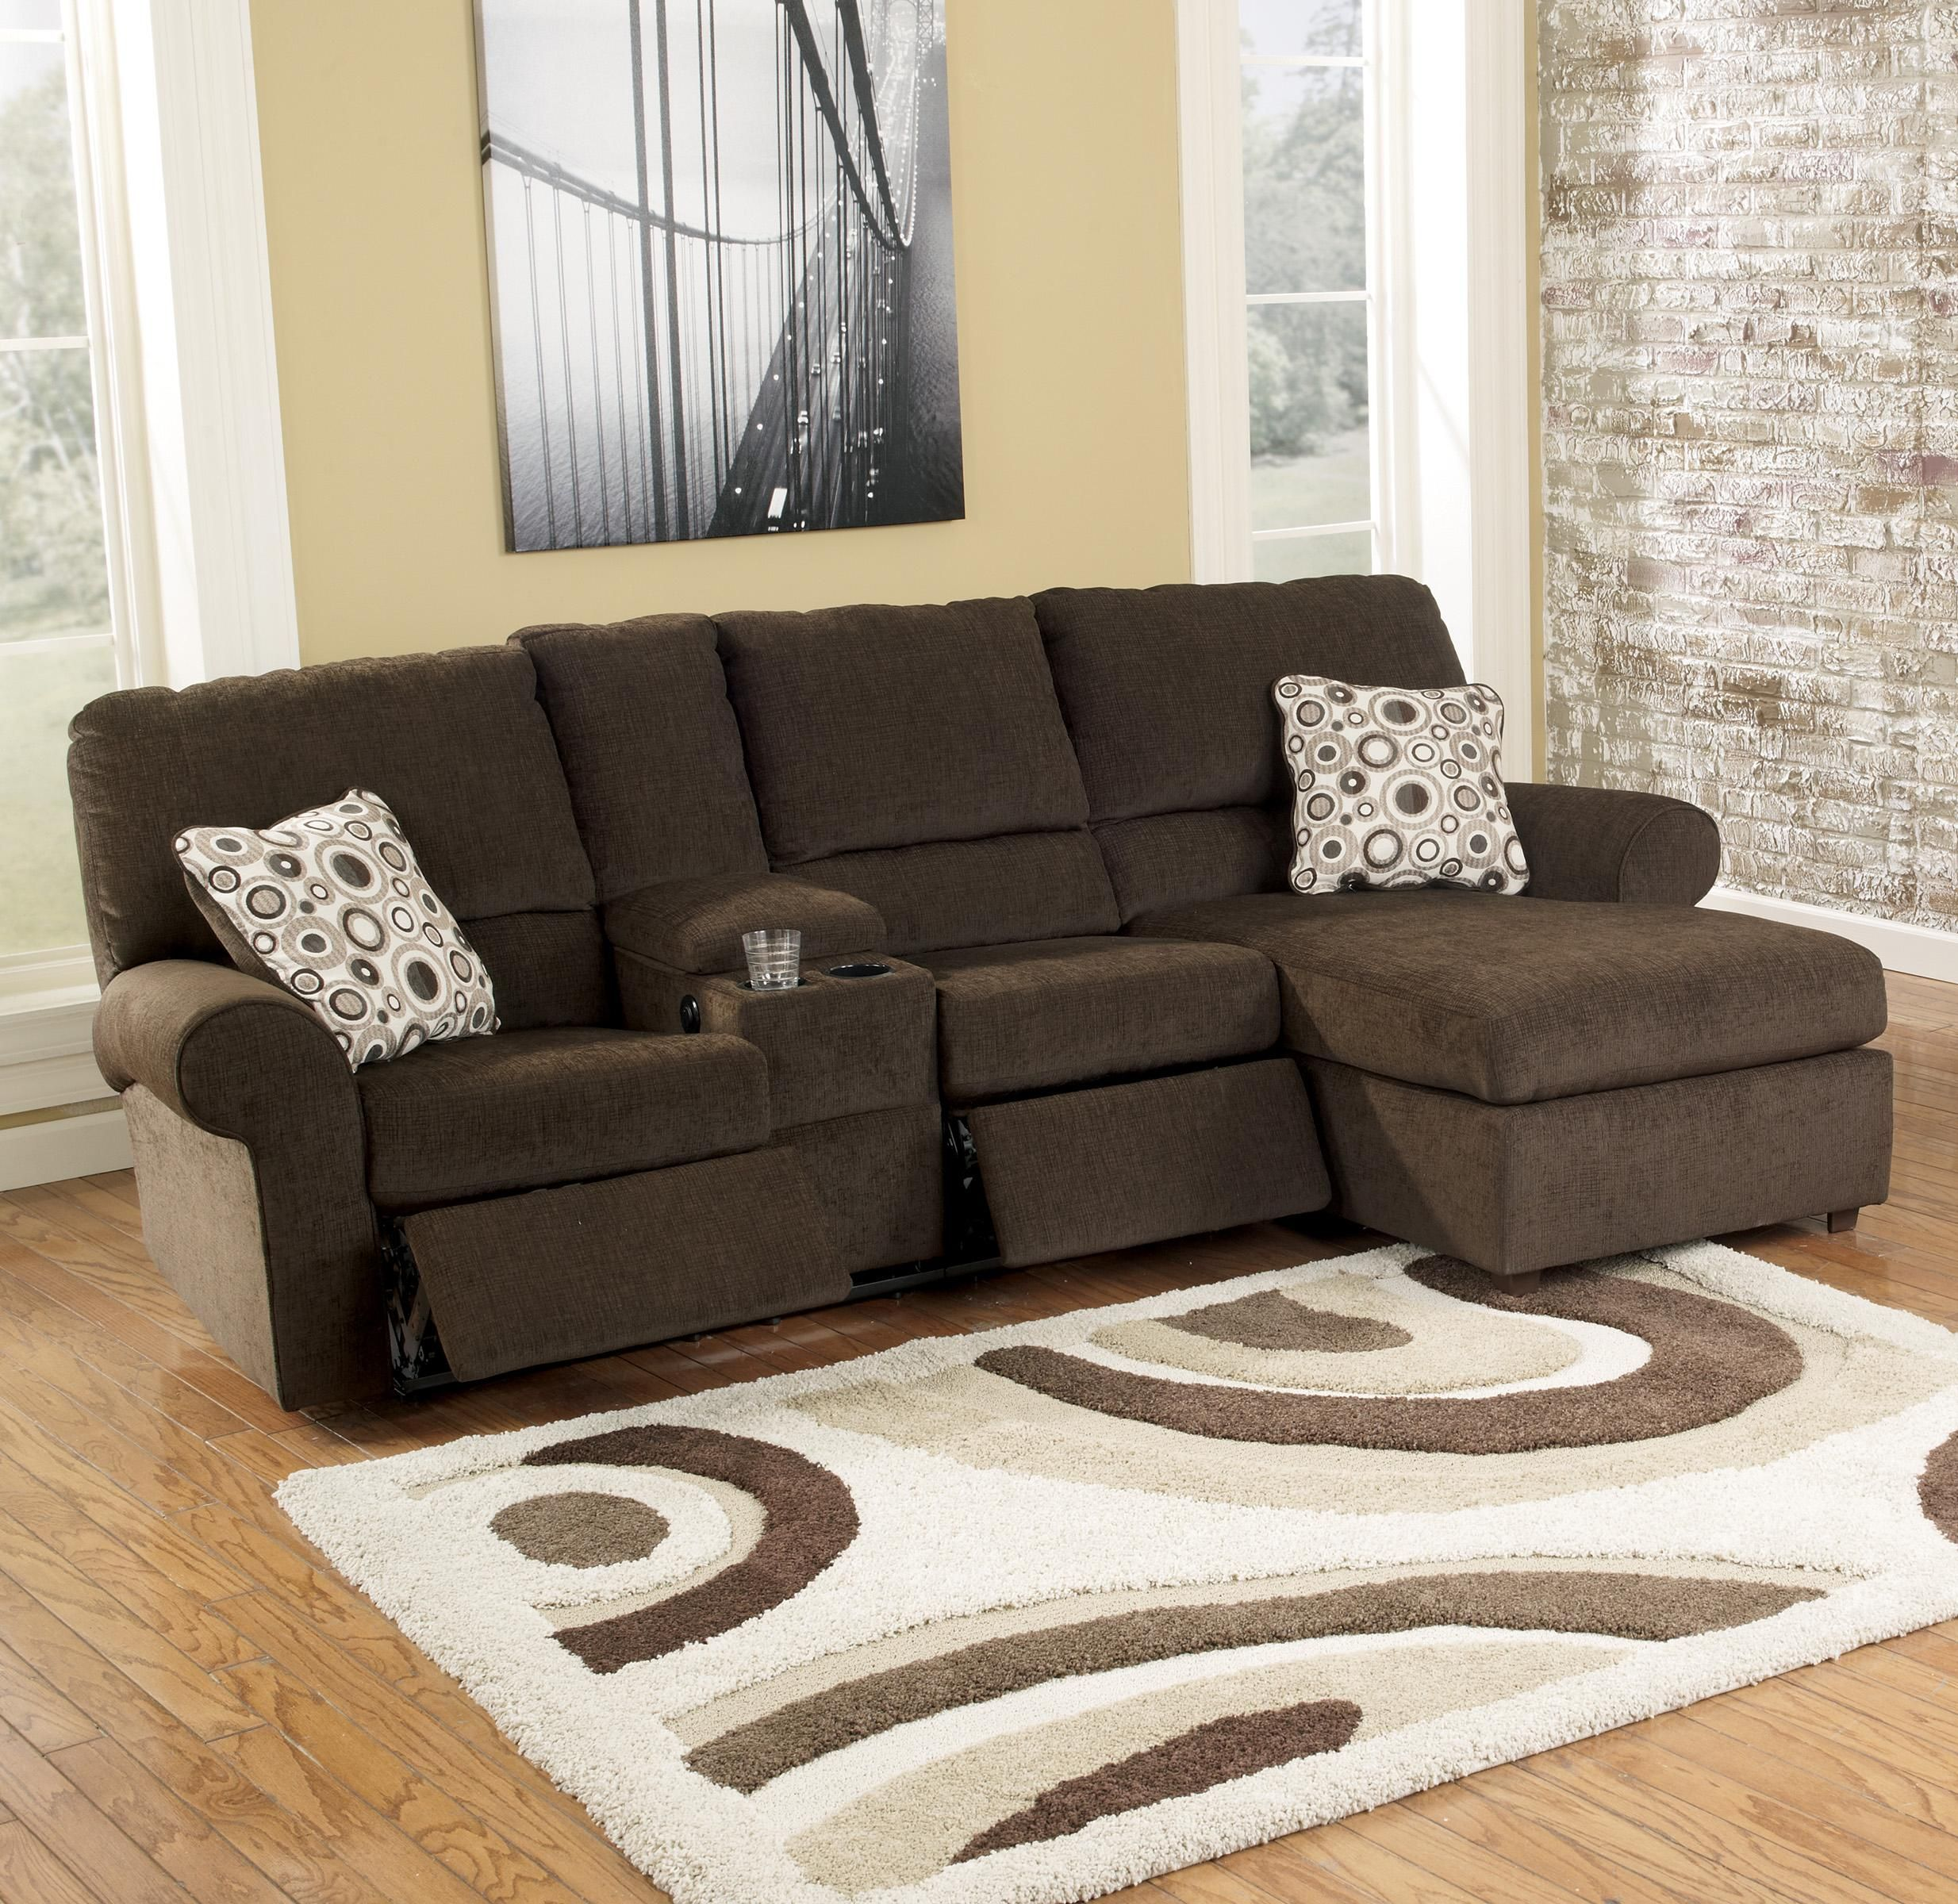 Signature Design by Ashley Cybertrack - Chocolate Reclining Sectional with Power Double Reclining Loveseat w/ Console \u0026 Press Back Chaise - Michael\u0027s ... & Cybertrack - Chocolate Power Reclining Sectional by Signature ... islam-shia.org